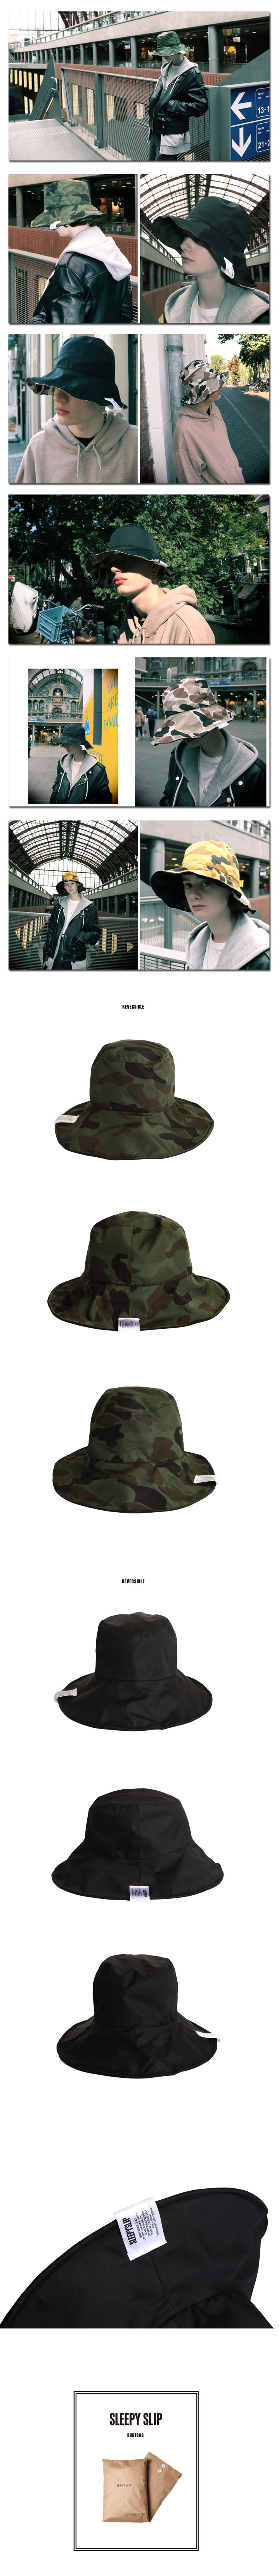 슬리피슬립(SLEEPYSLIP) [unisex]MILITARY REVERSIBLE KHAKI BUCKET HAT